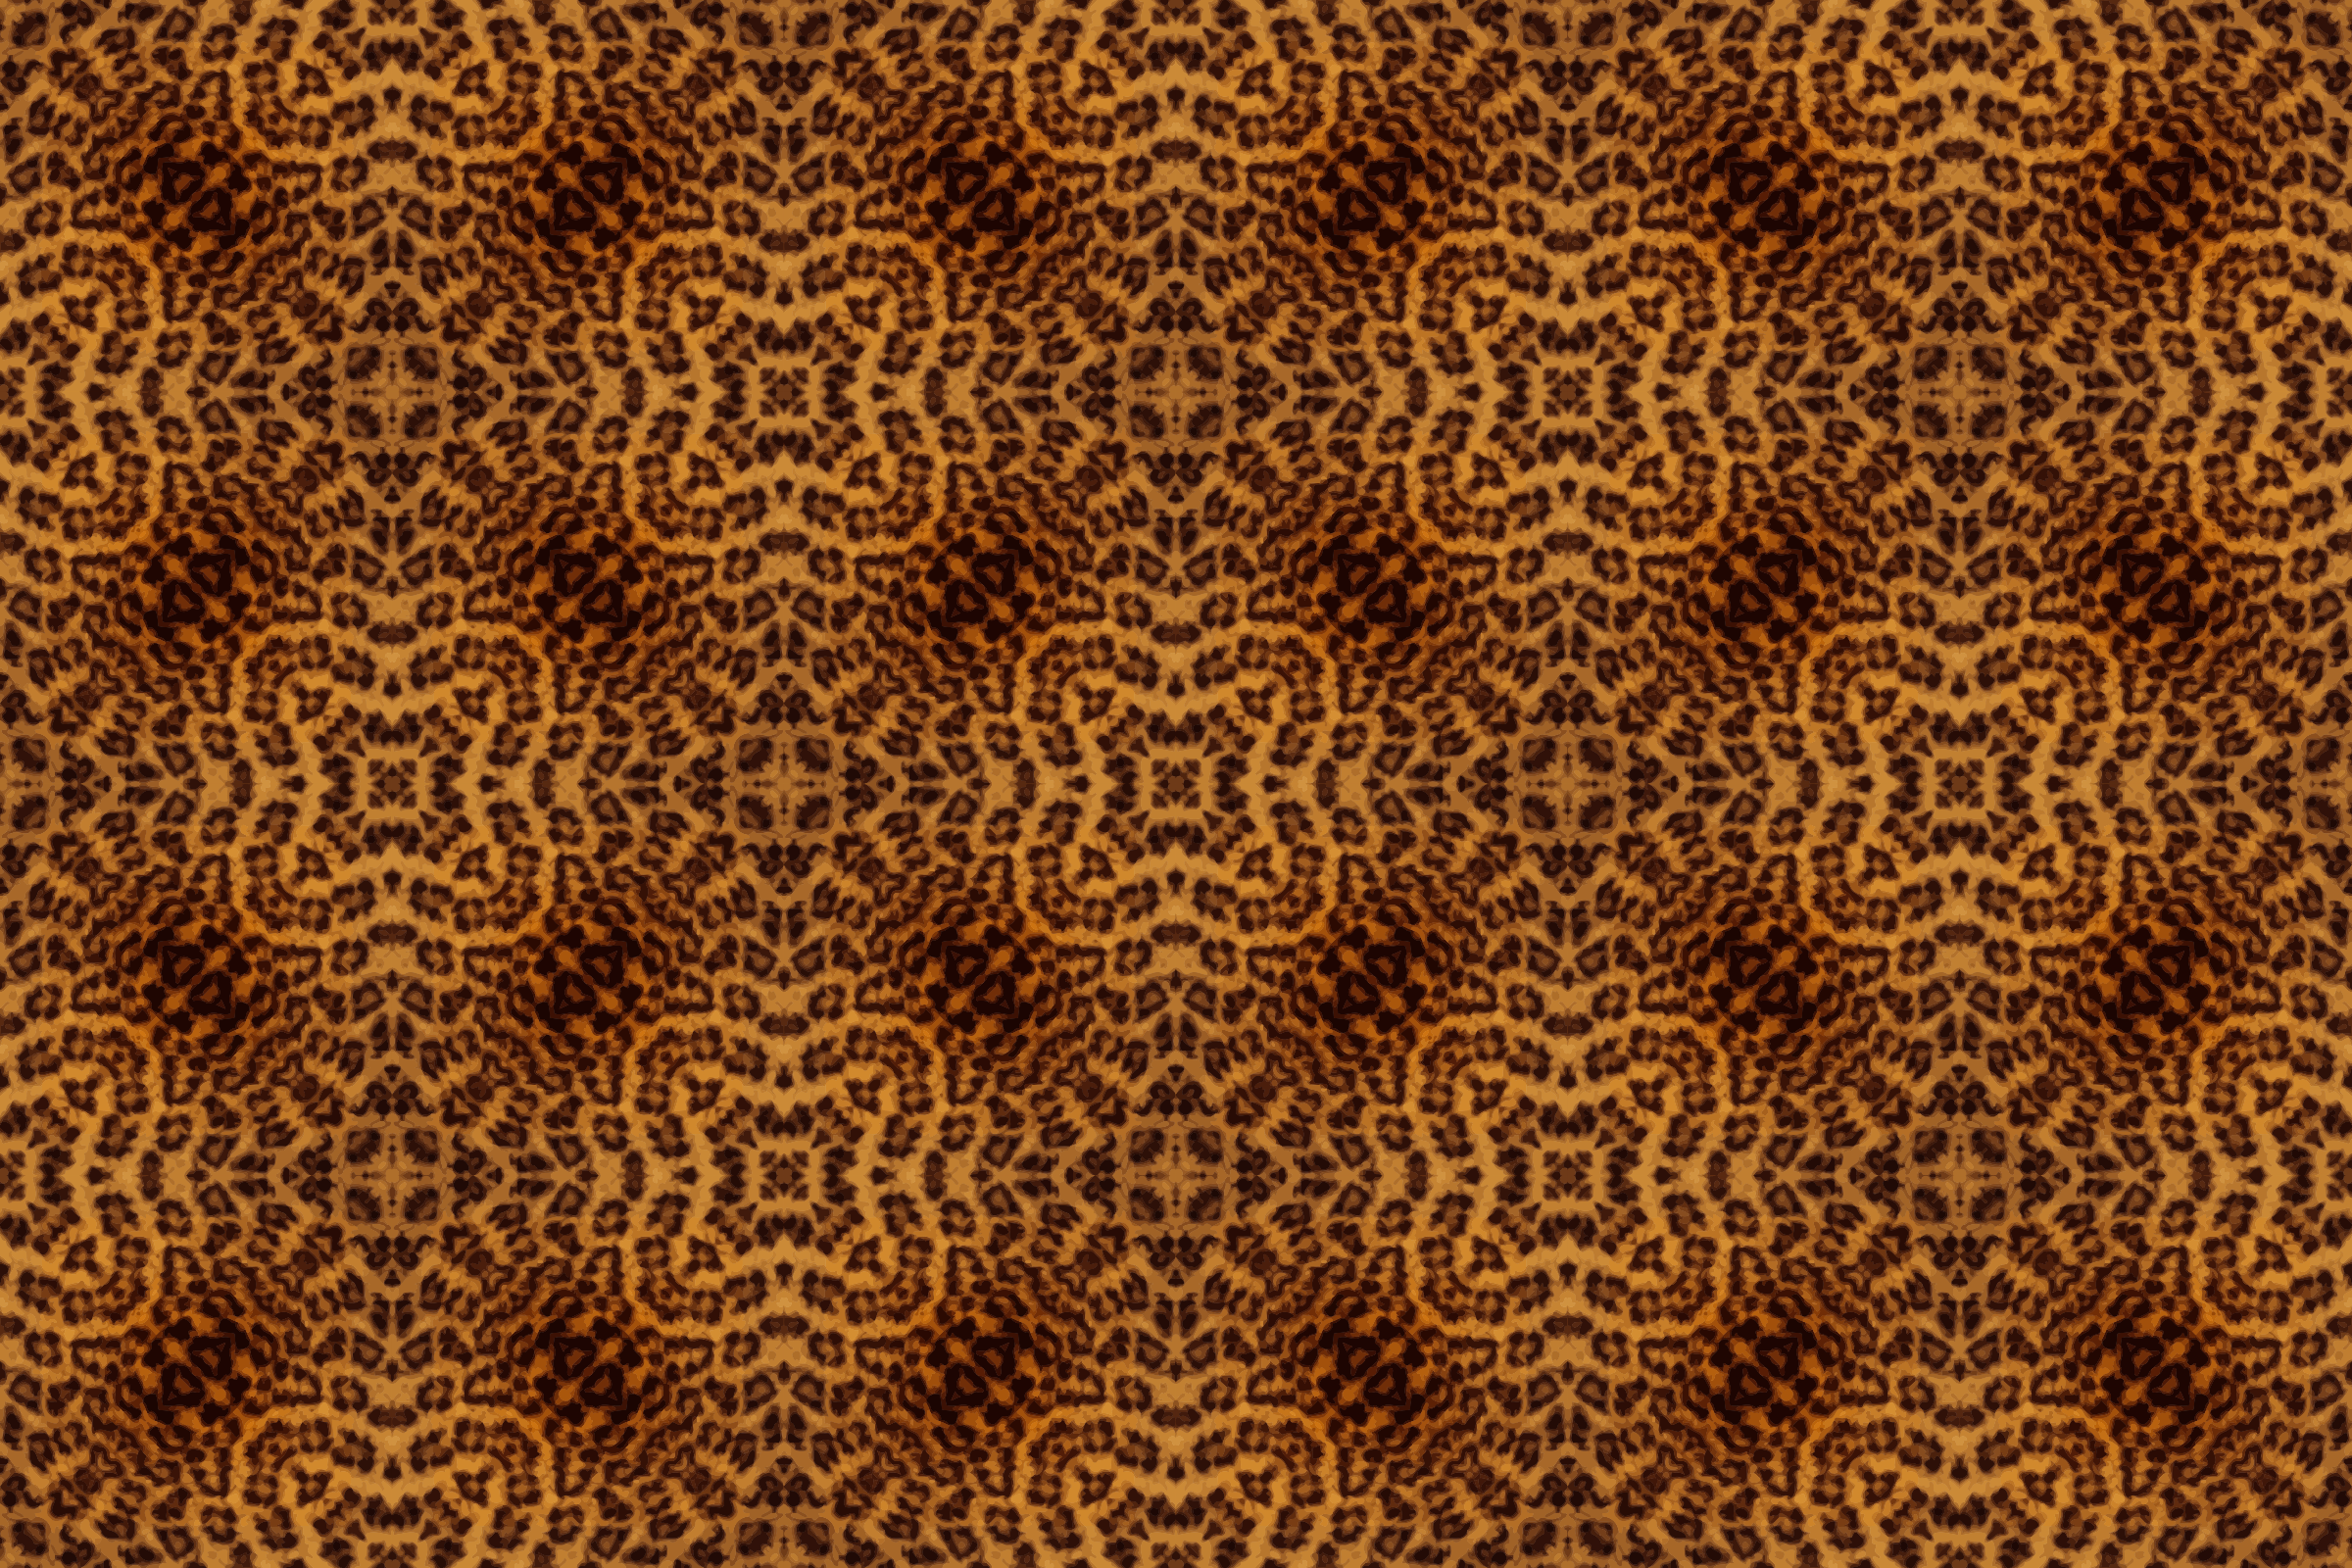 Fur vector texture. Leopard pattern icons png